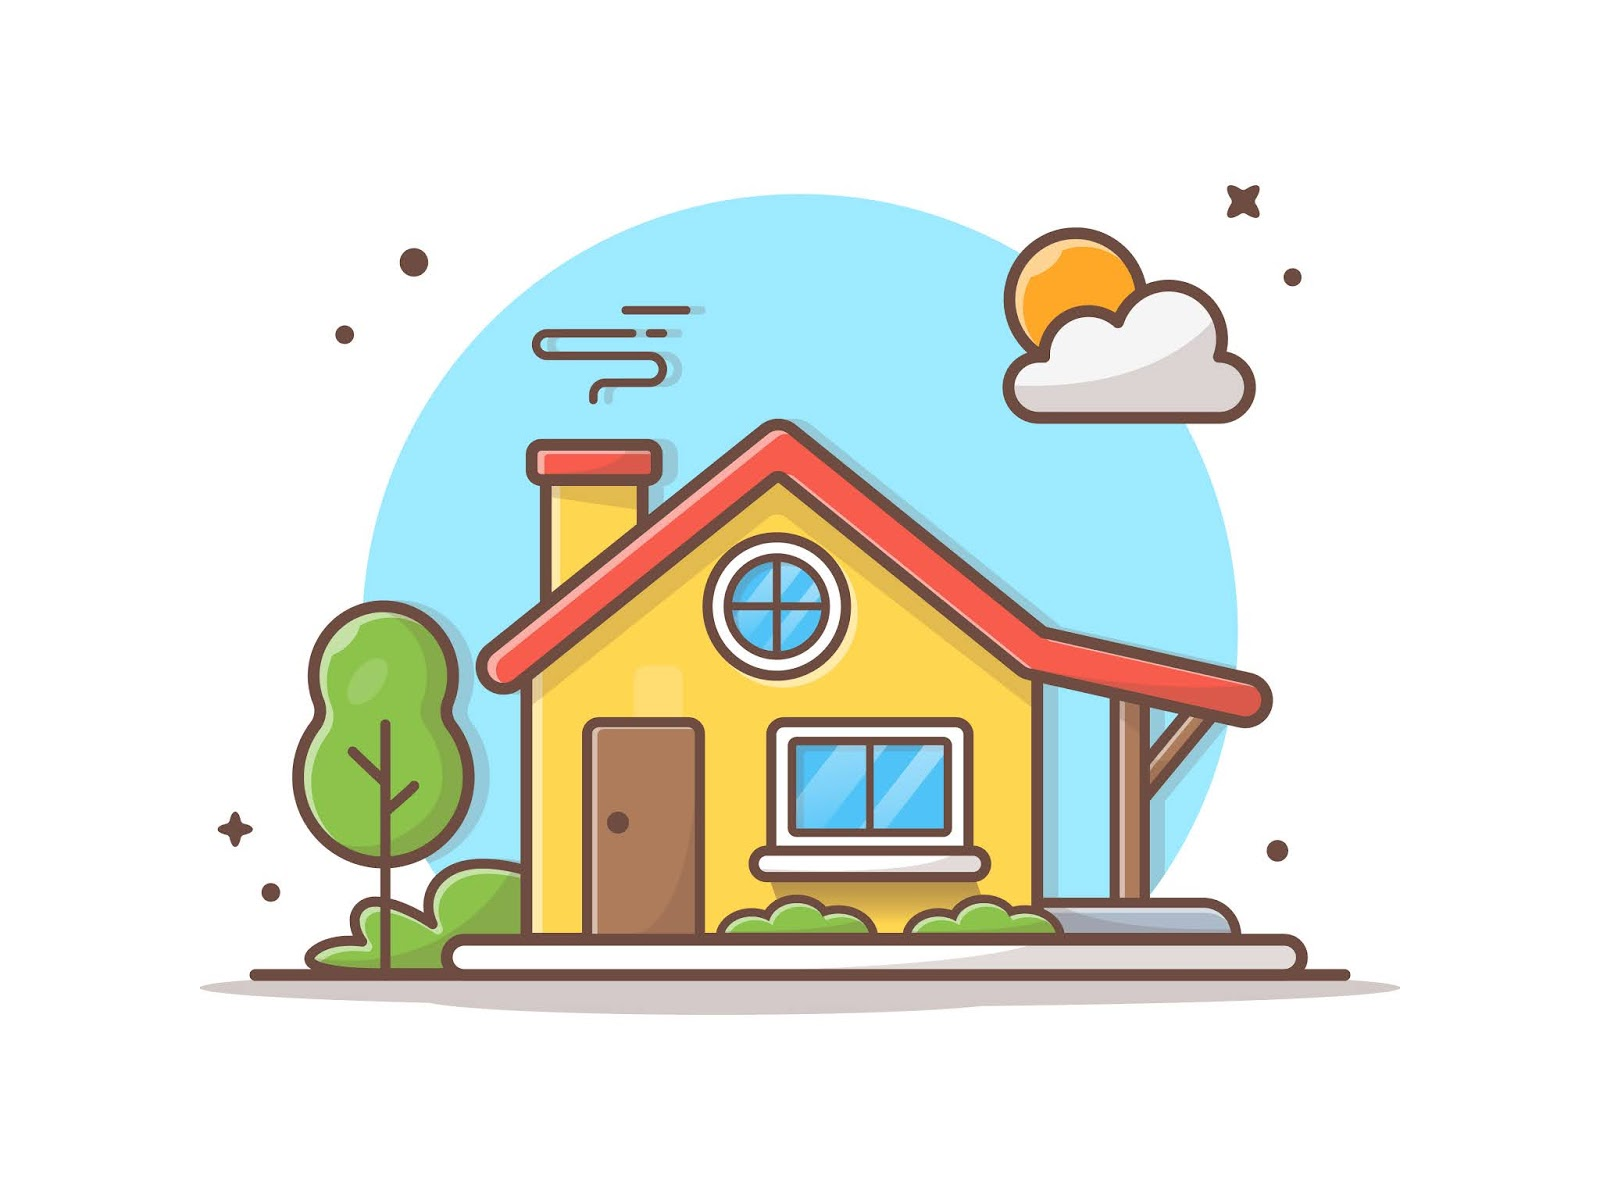 House Building Vector Icon Illustration Free Download Vector CDR, AI, EPS and PNG Formats